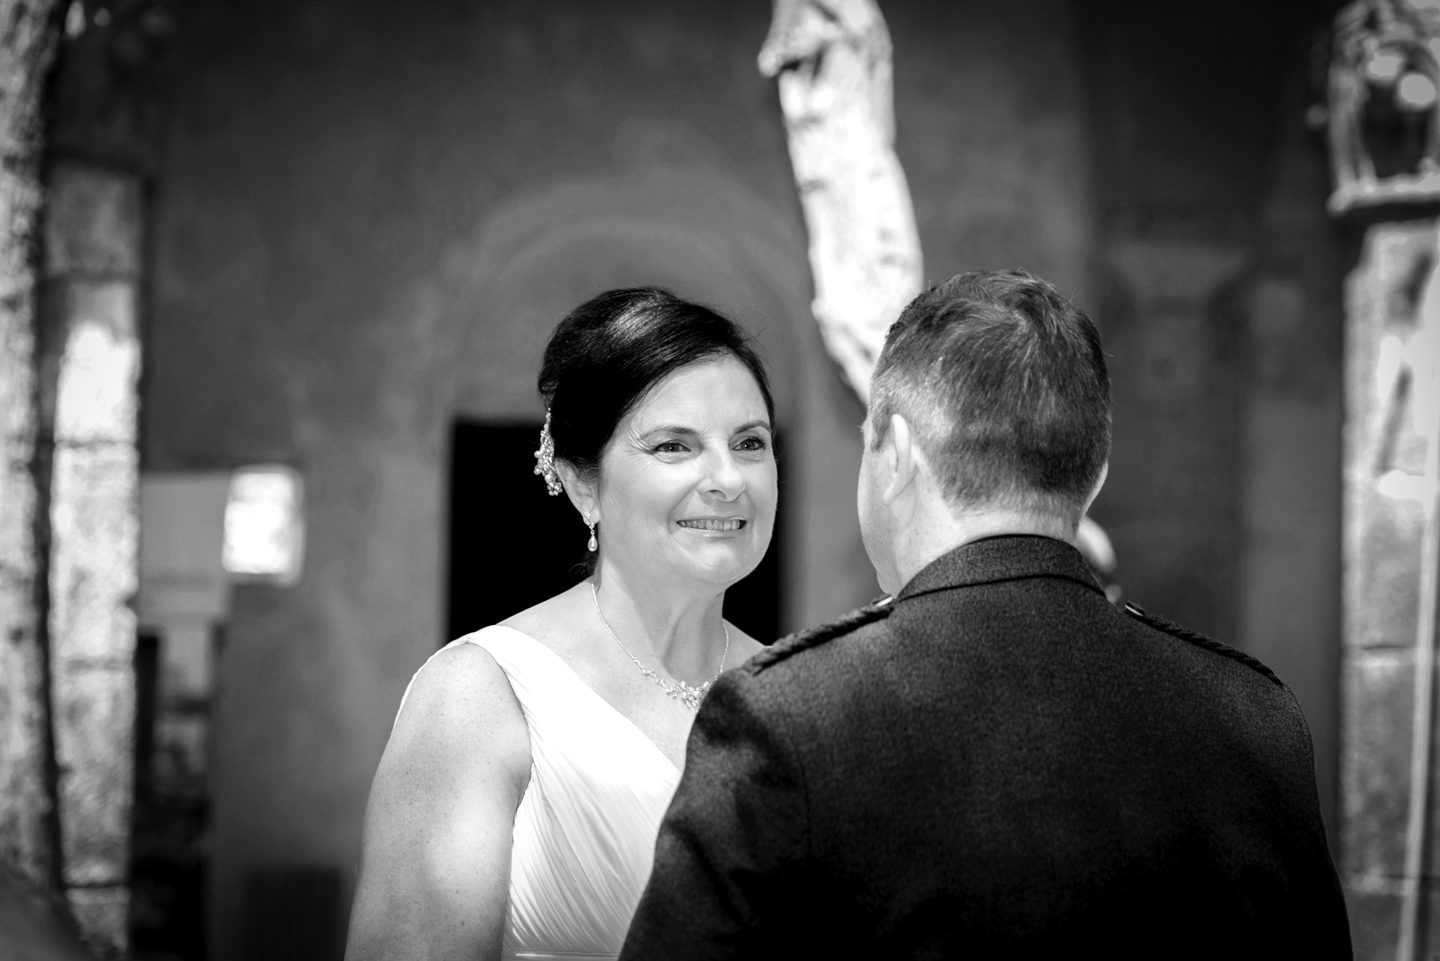 Russell & Linda_Wedding_Sorrento_Scotland_Groom_Bride_BW